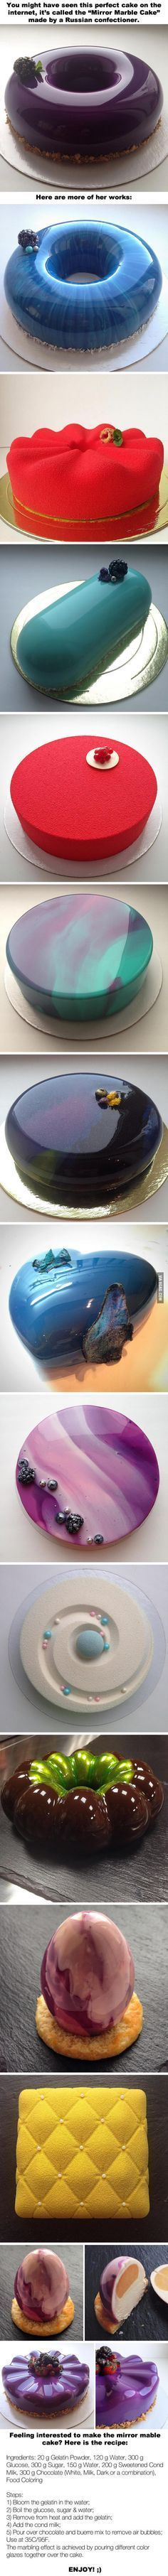 best galactic images on pinterest galaxy cake pound cake and